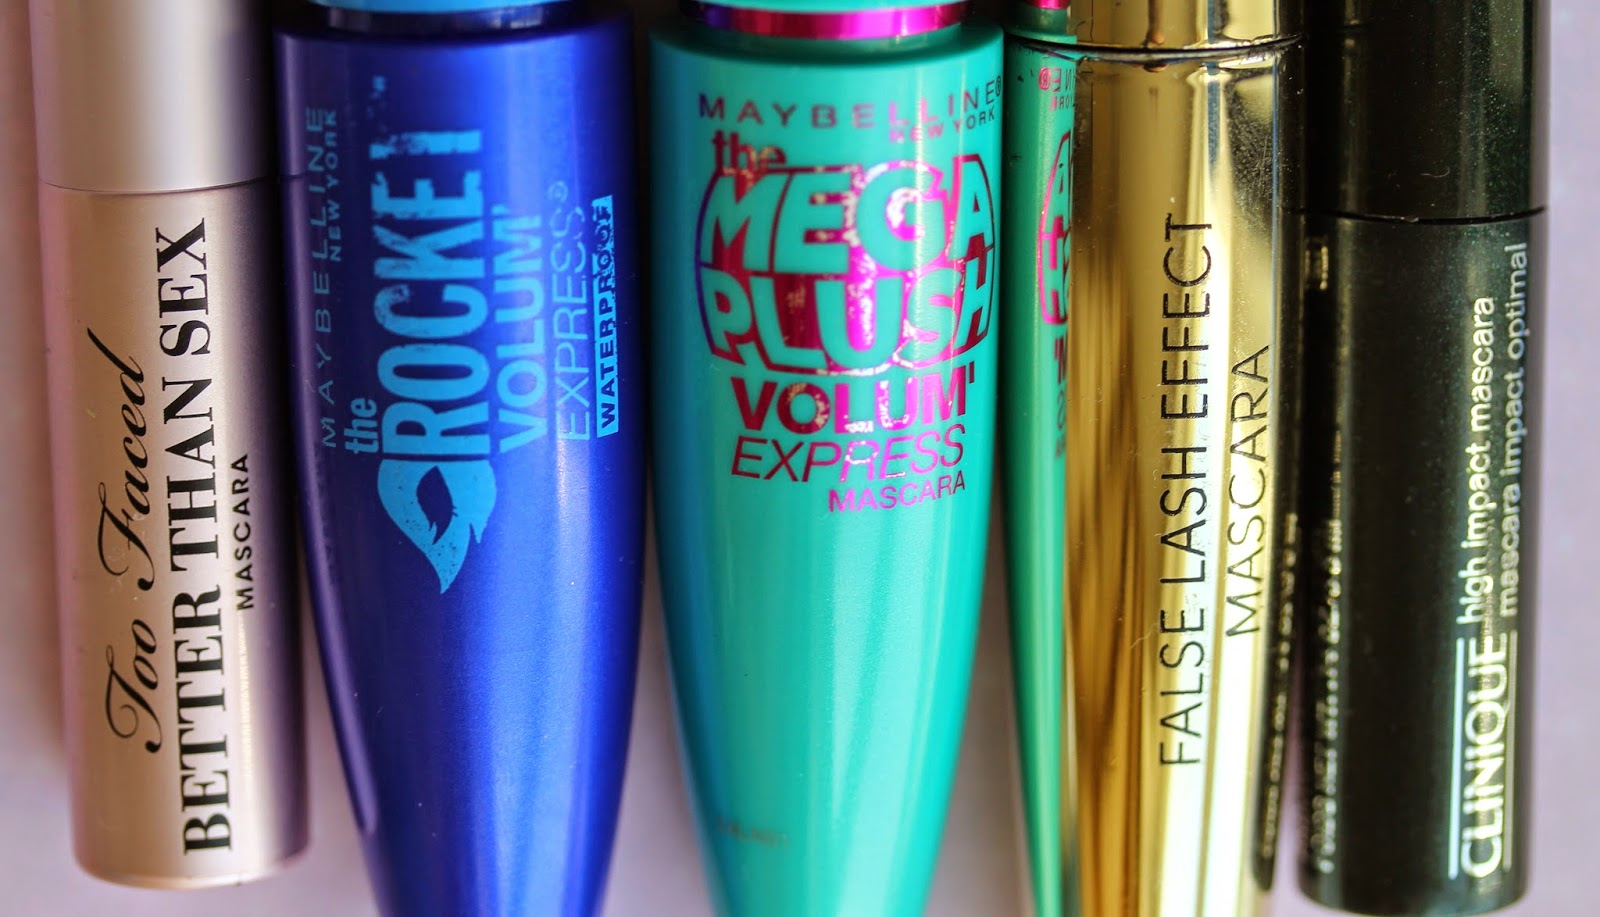 Favourite mascaras: Too Faced, Maybelline, Primark and Clinique